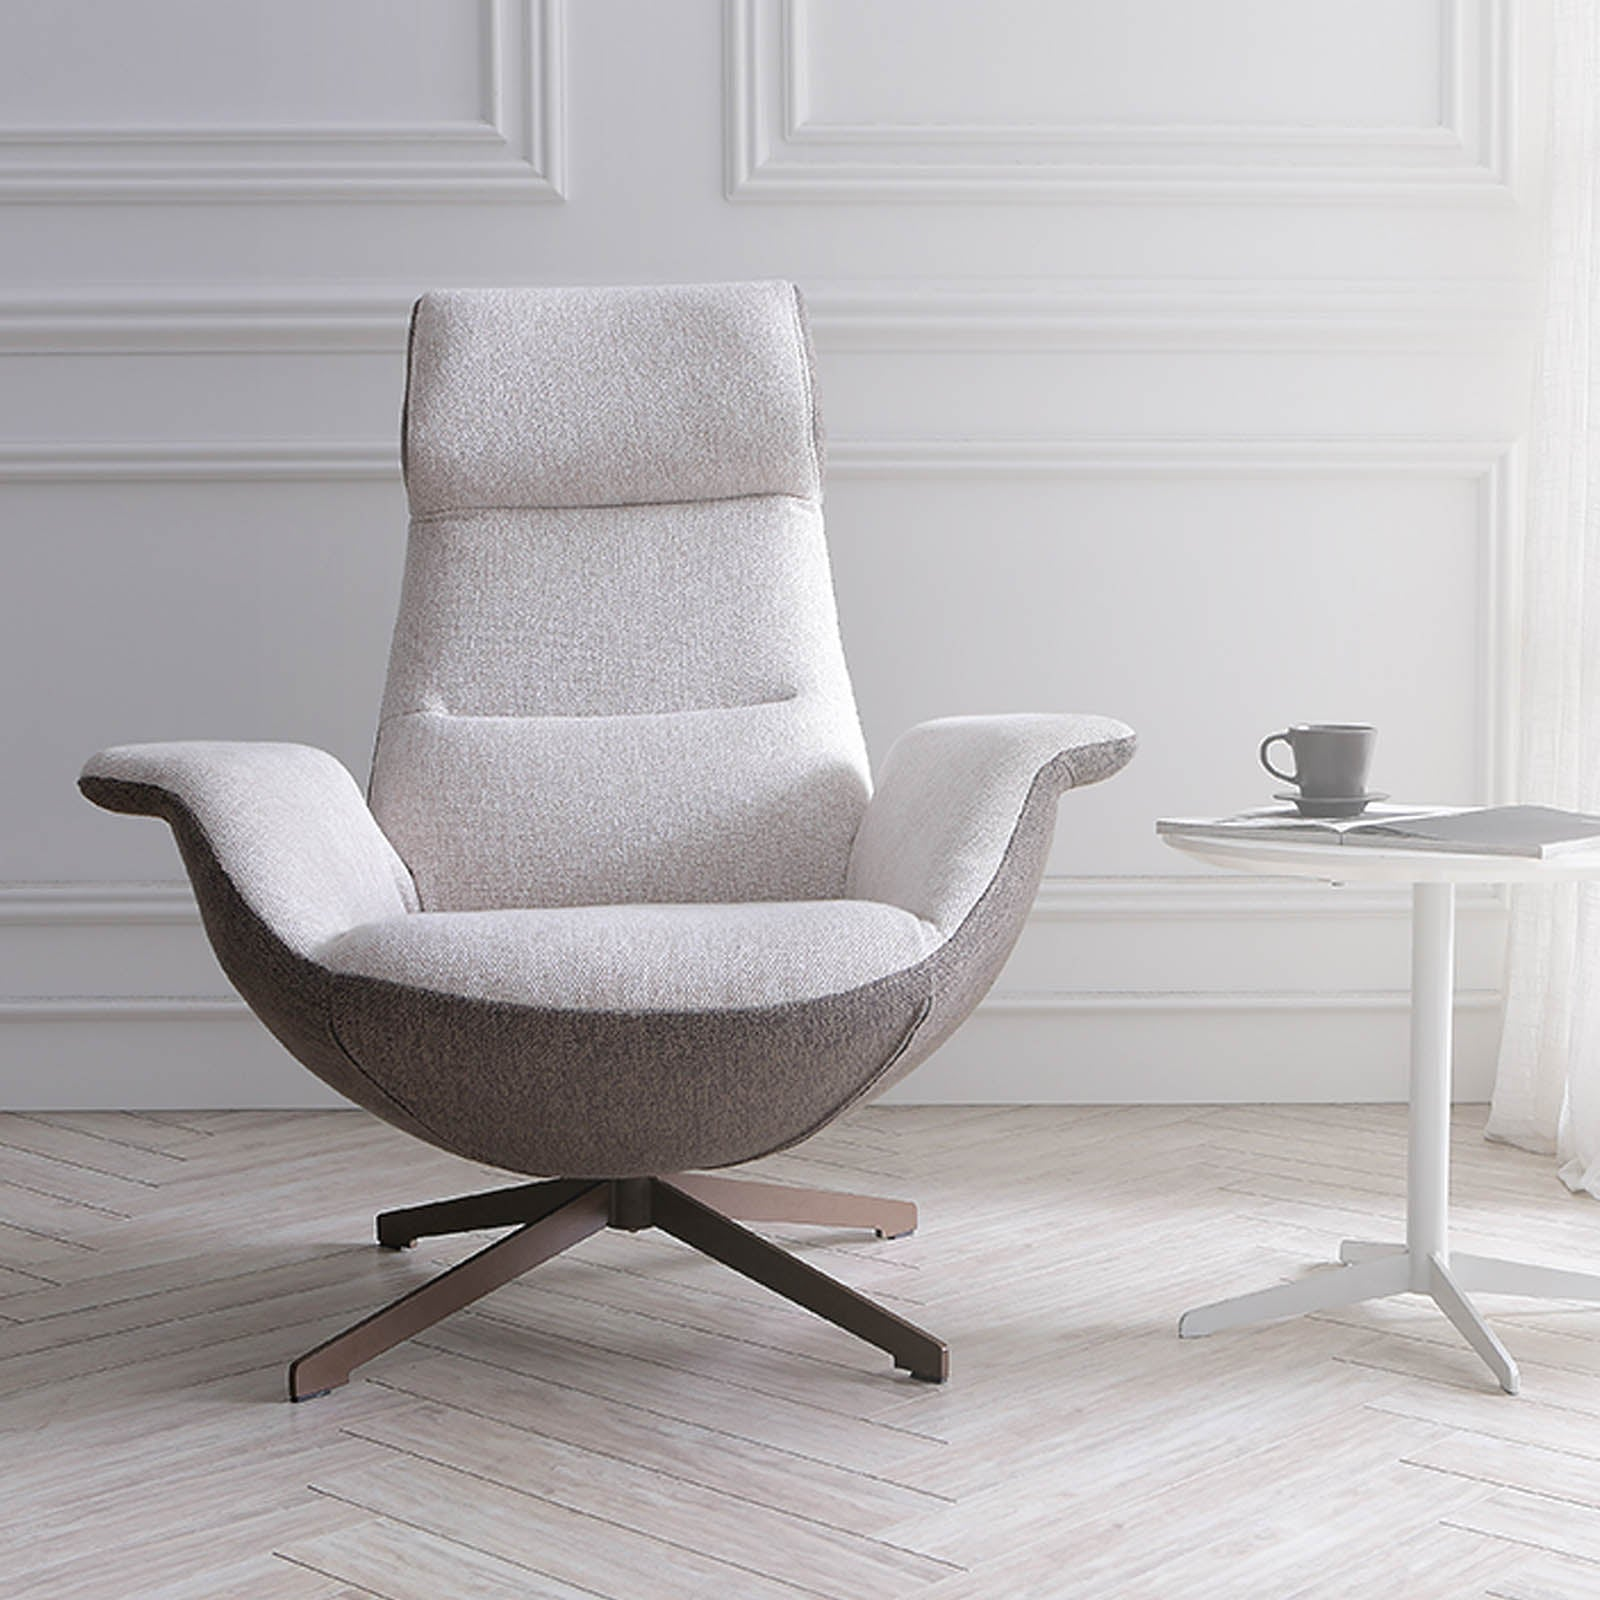 Venezia Swivel Lounge Chair  LC015 - ebarza